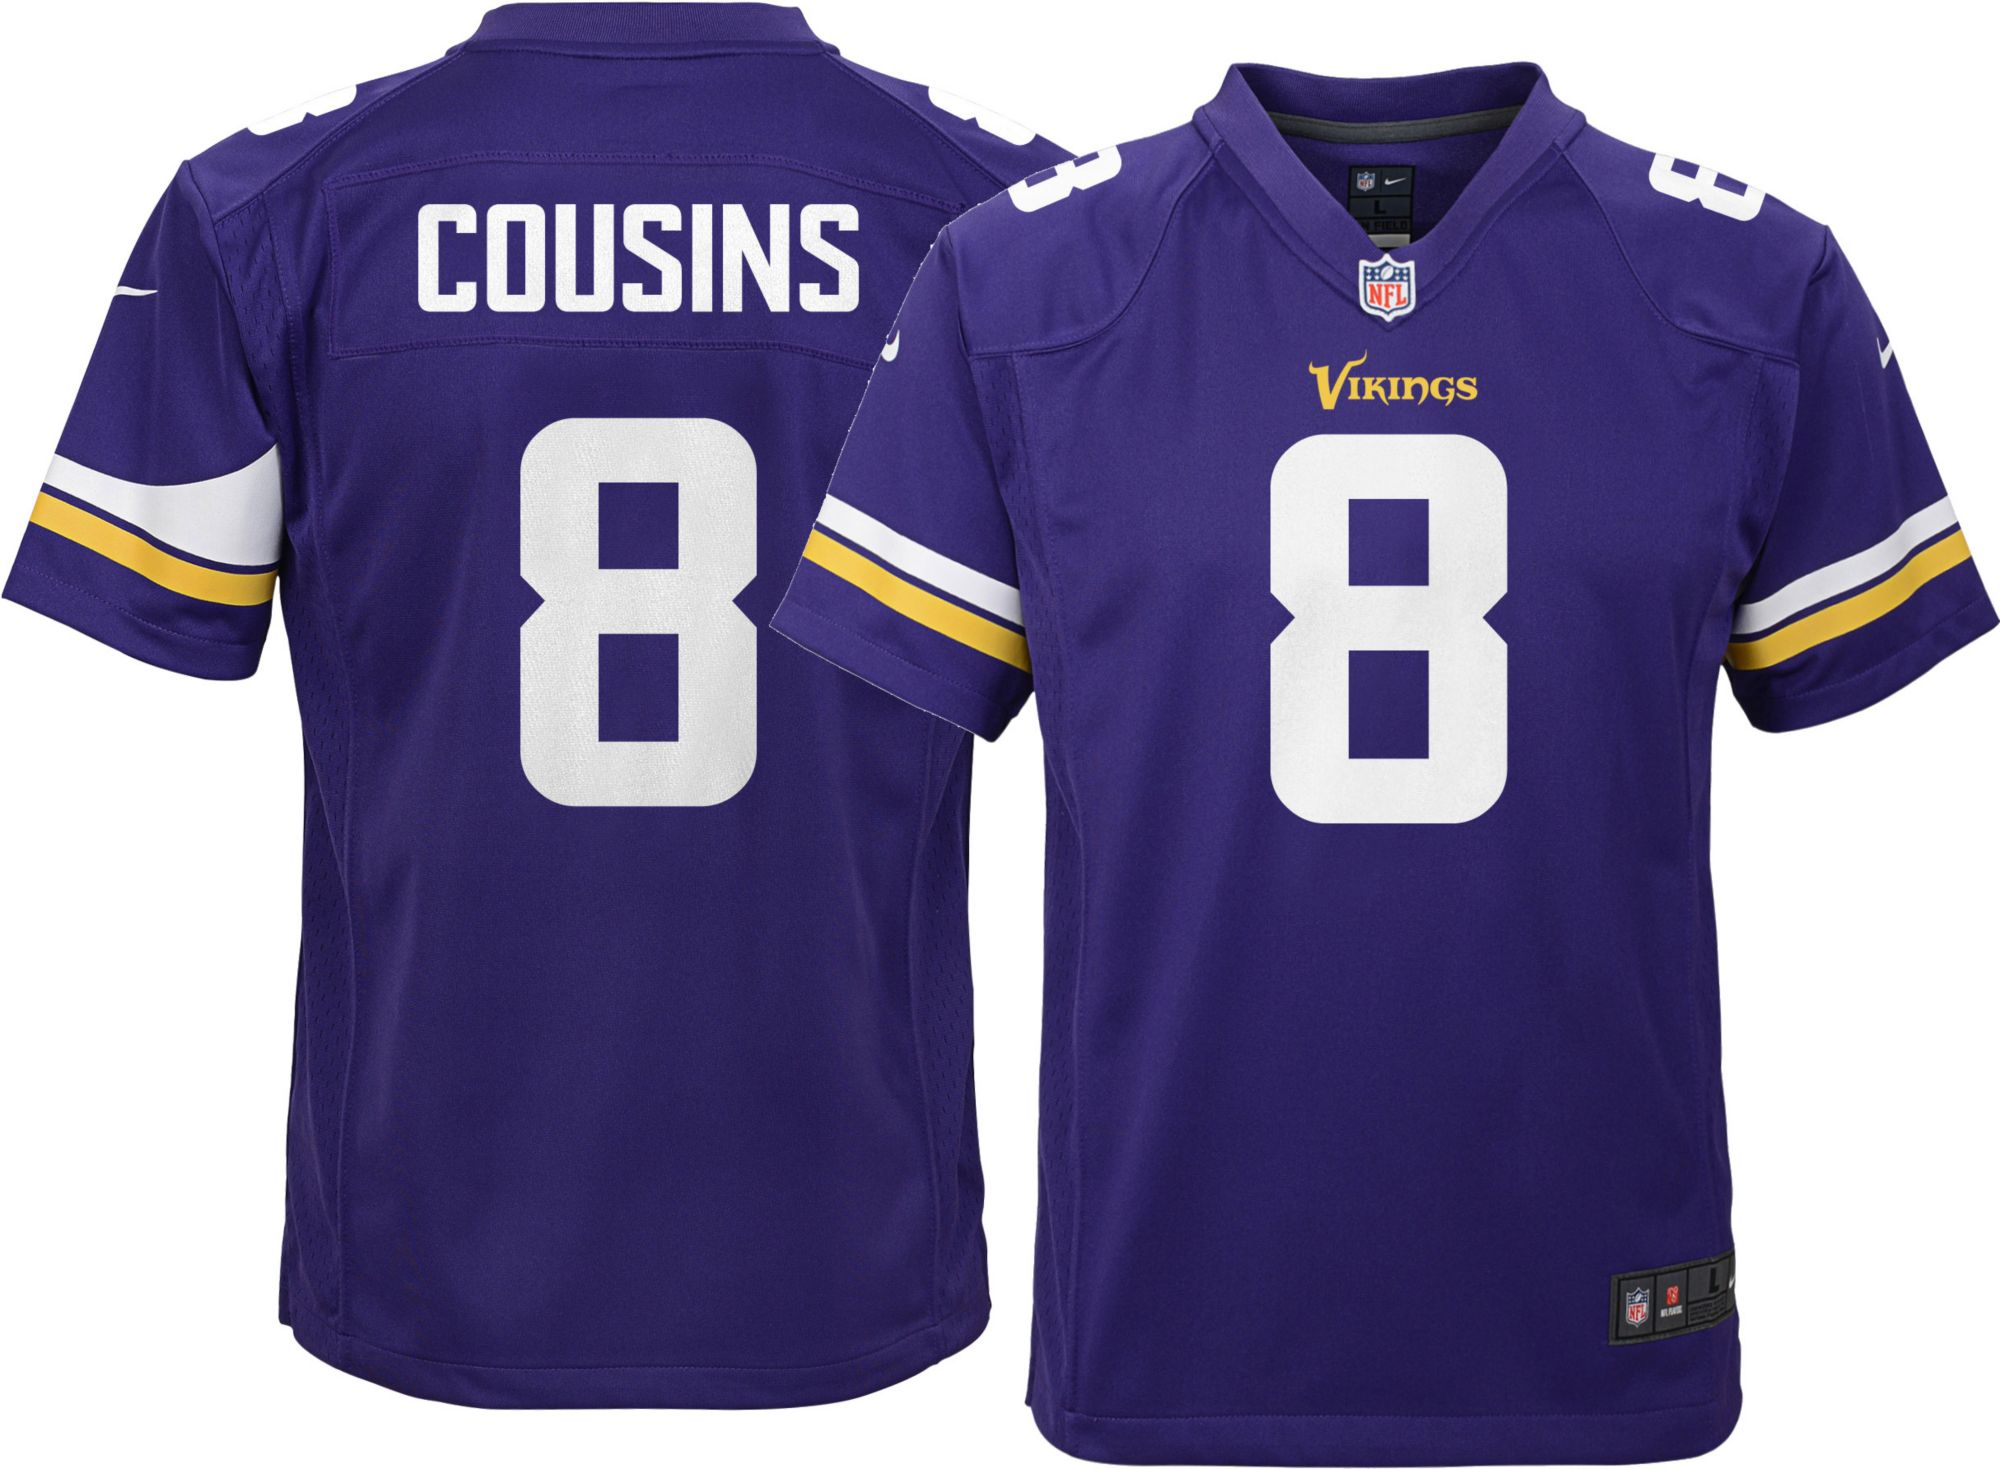 the latest 7ed4f 2d412 kirk cousins jersey number